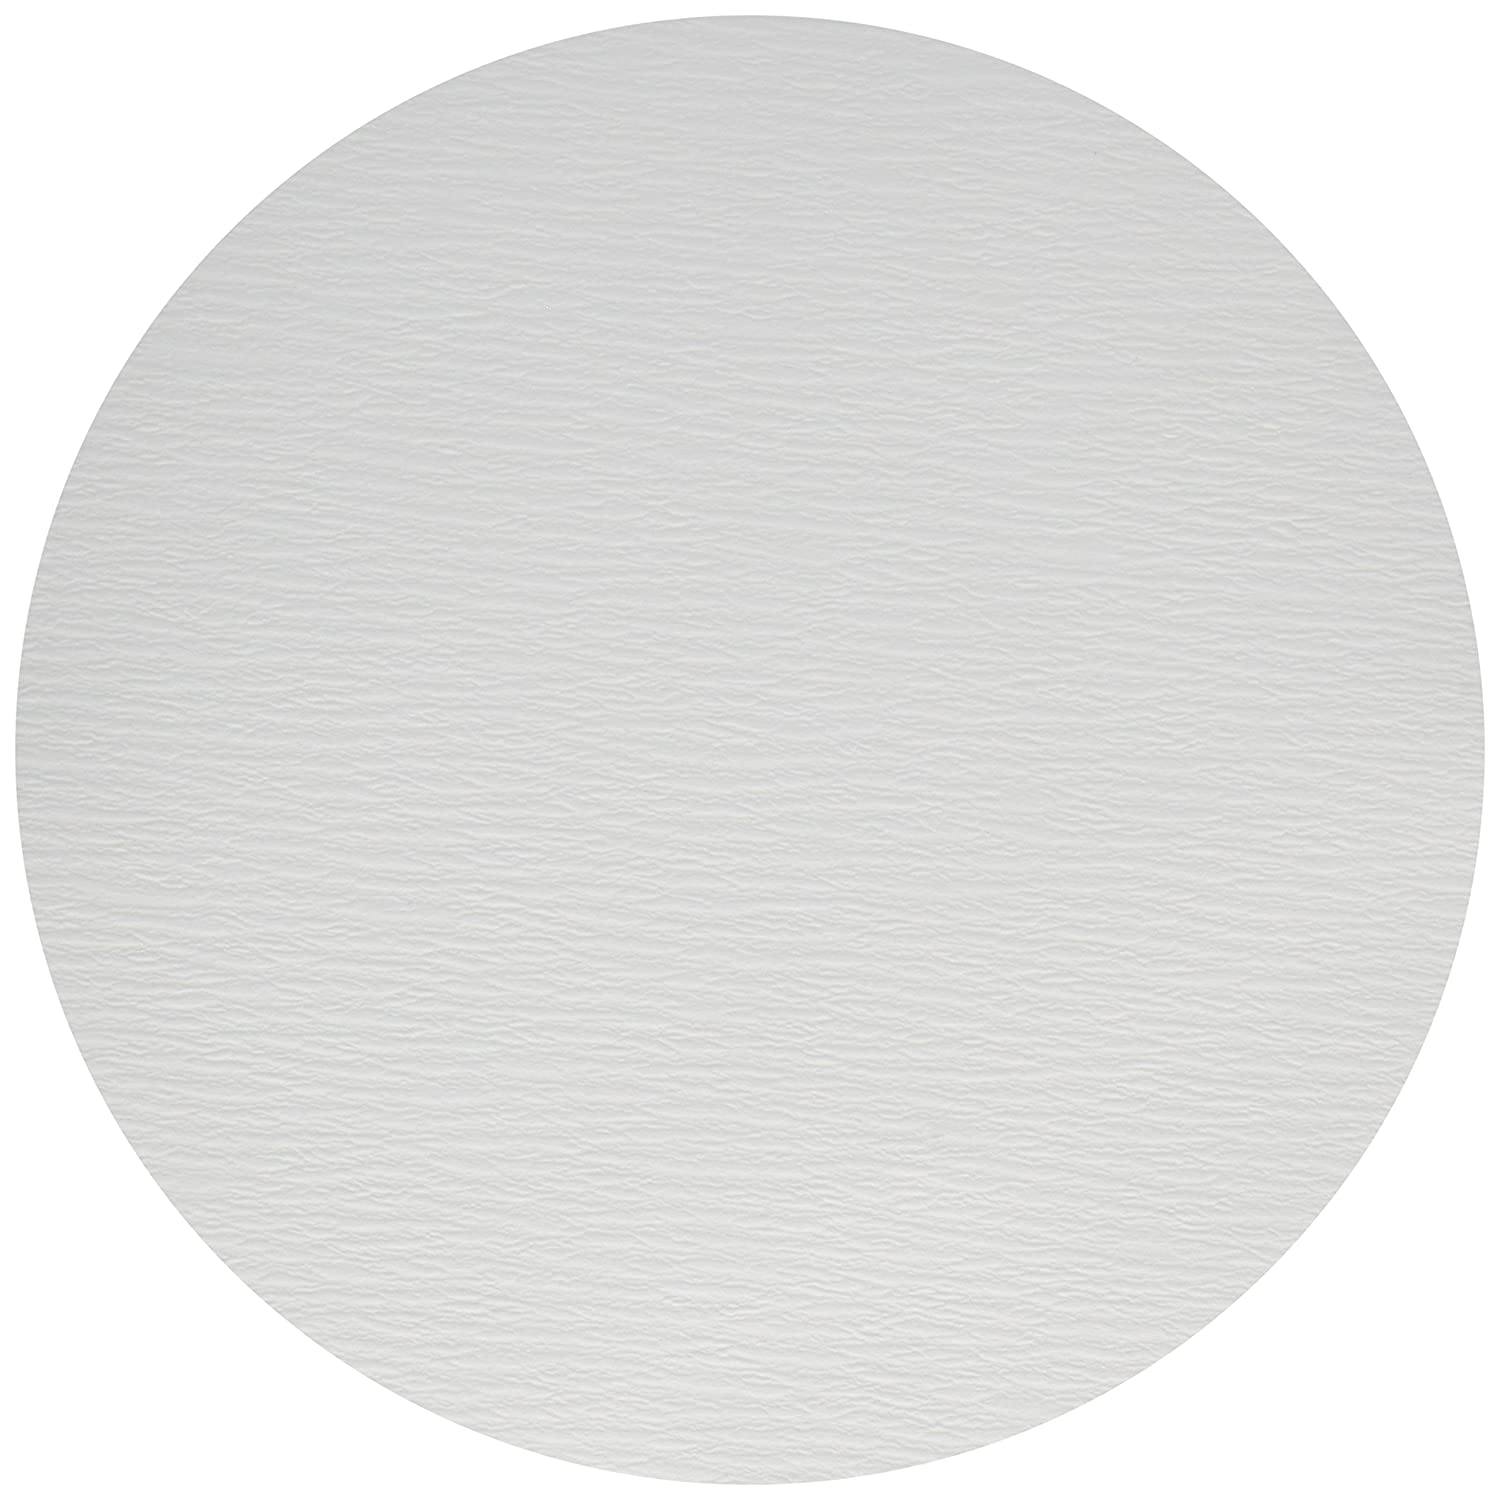 Selling Cytiva Reeve Angel 5230-240 Qualitative Circle Filter Cr Paper Max 75% OFF